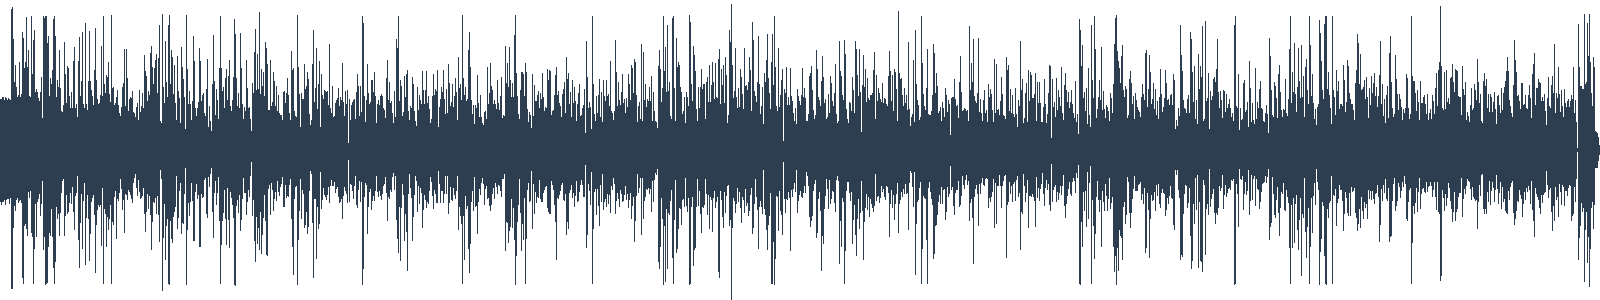 #1 Tour Down Under, divoké karty a Six Day Berlin waveform